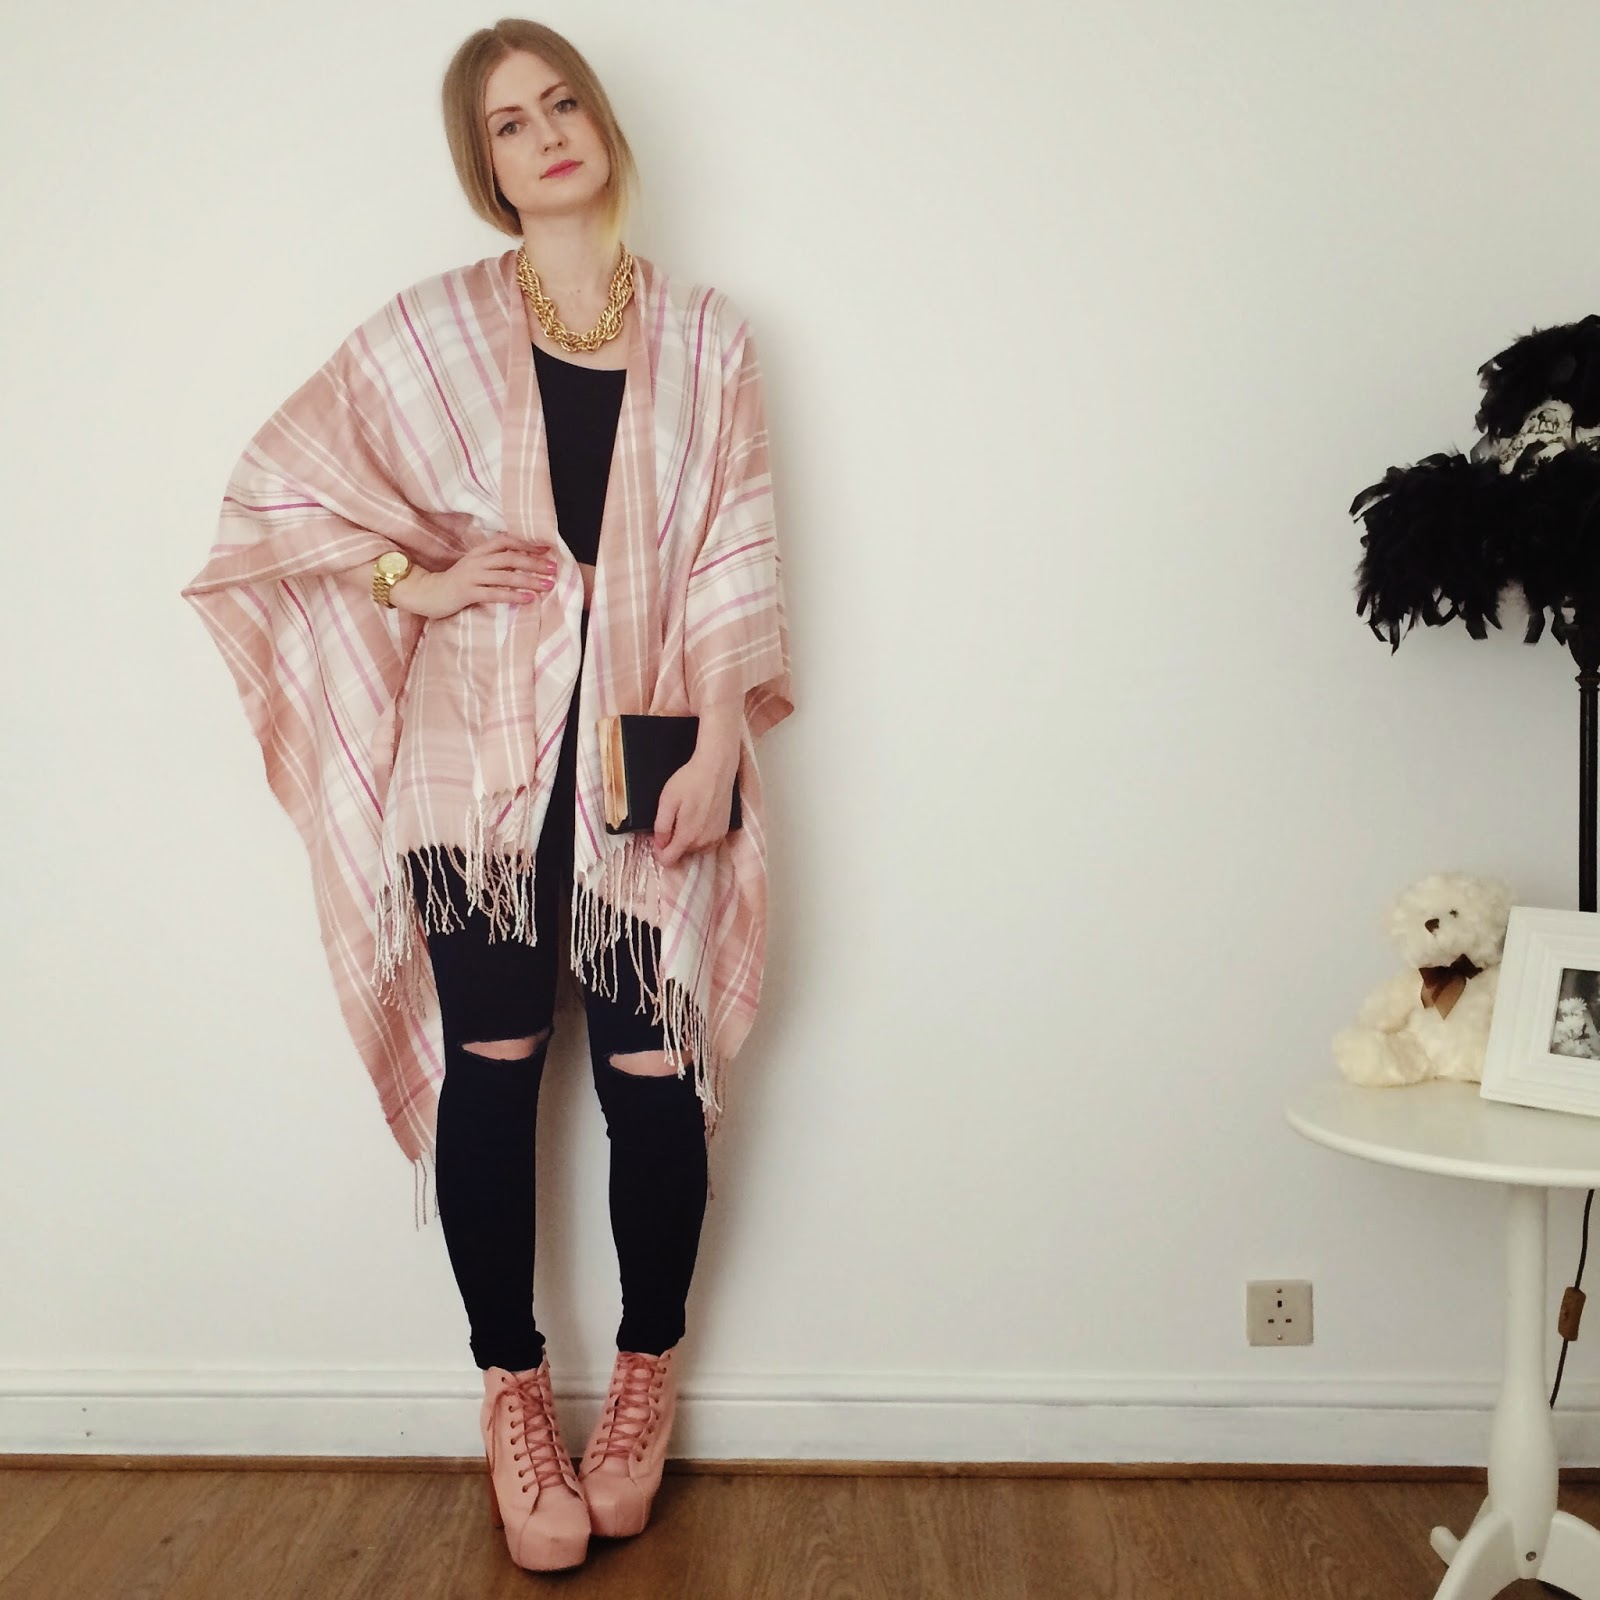 FashionFake, a UK fashion and lifestyle blog. Blue Vanilla create the best cover up for Spring - a pastel pink, tartan patterned poncho, perfect for those chilly Spring days when you need an extra layer.